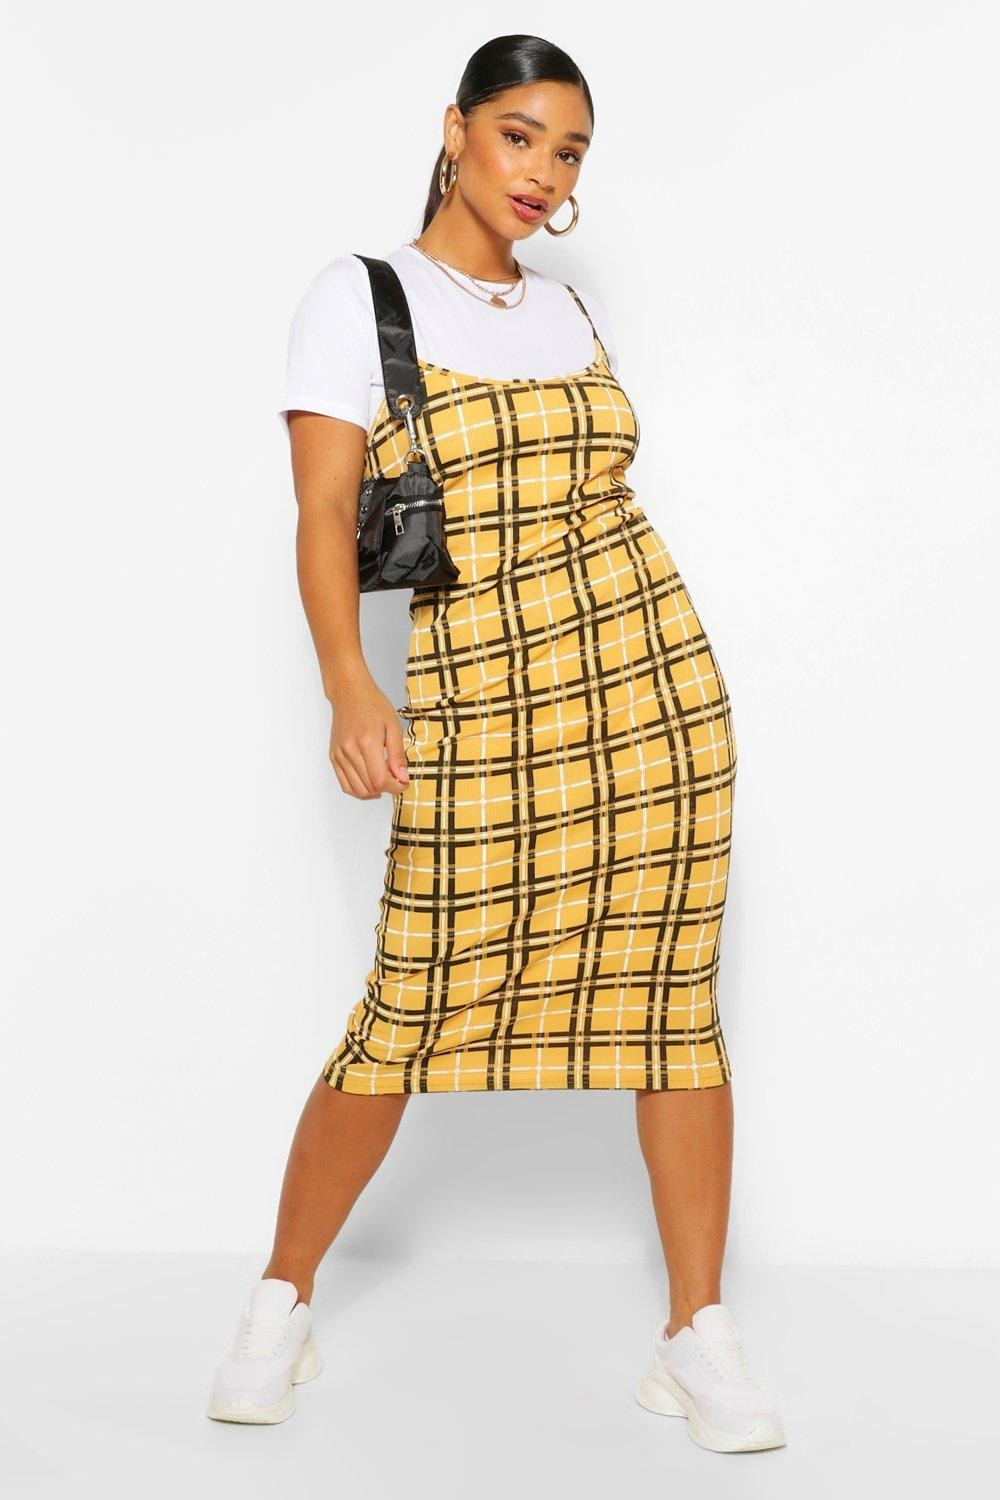 Model wearing the knee-length spaghetti strap dress in yellow with black and white plaid and a white short-sleeved t-shirt under it